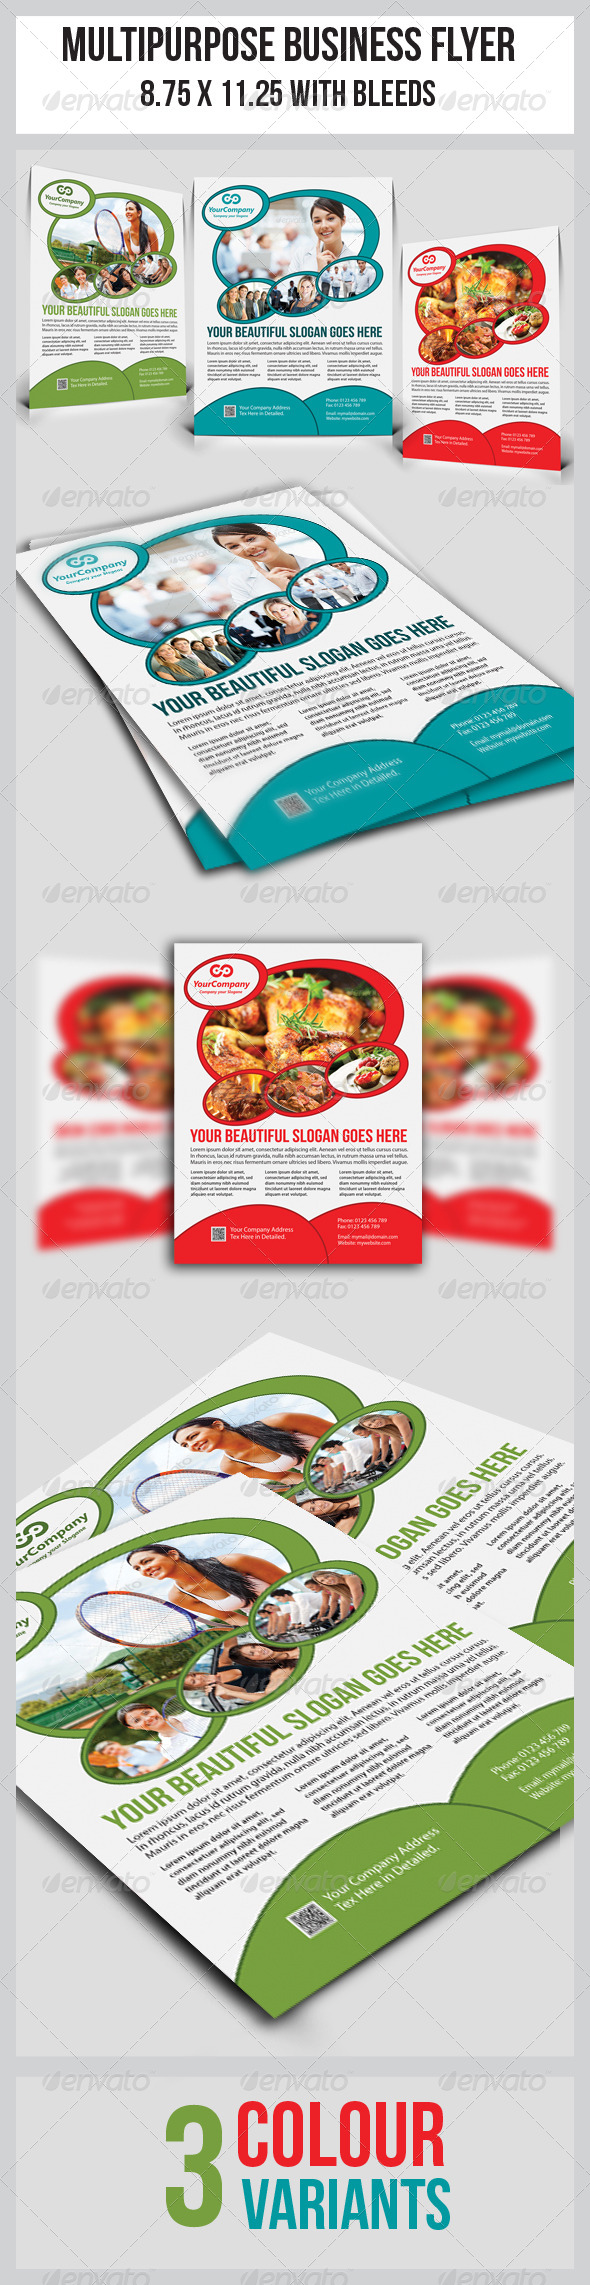 GraphicRiver Multipurpose Business Flyer 6705531